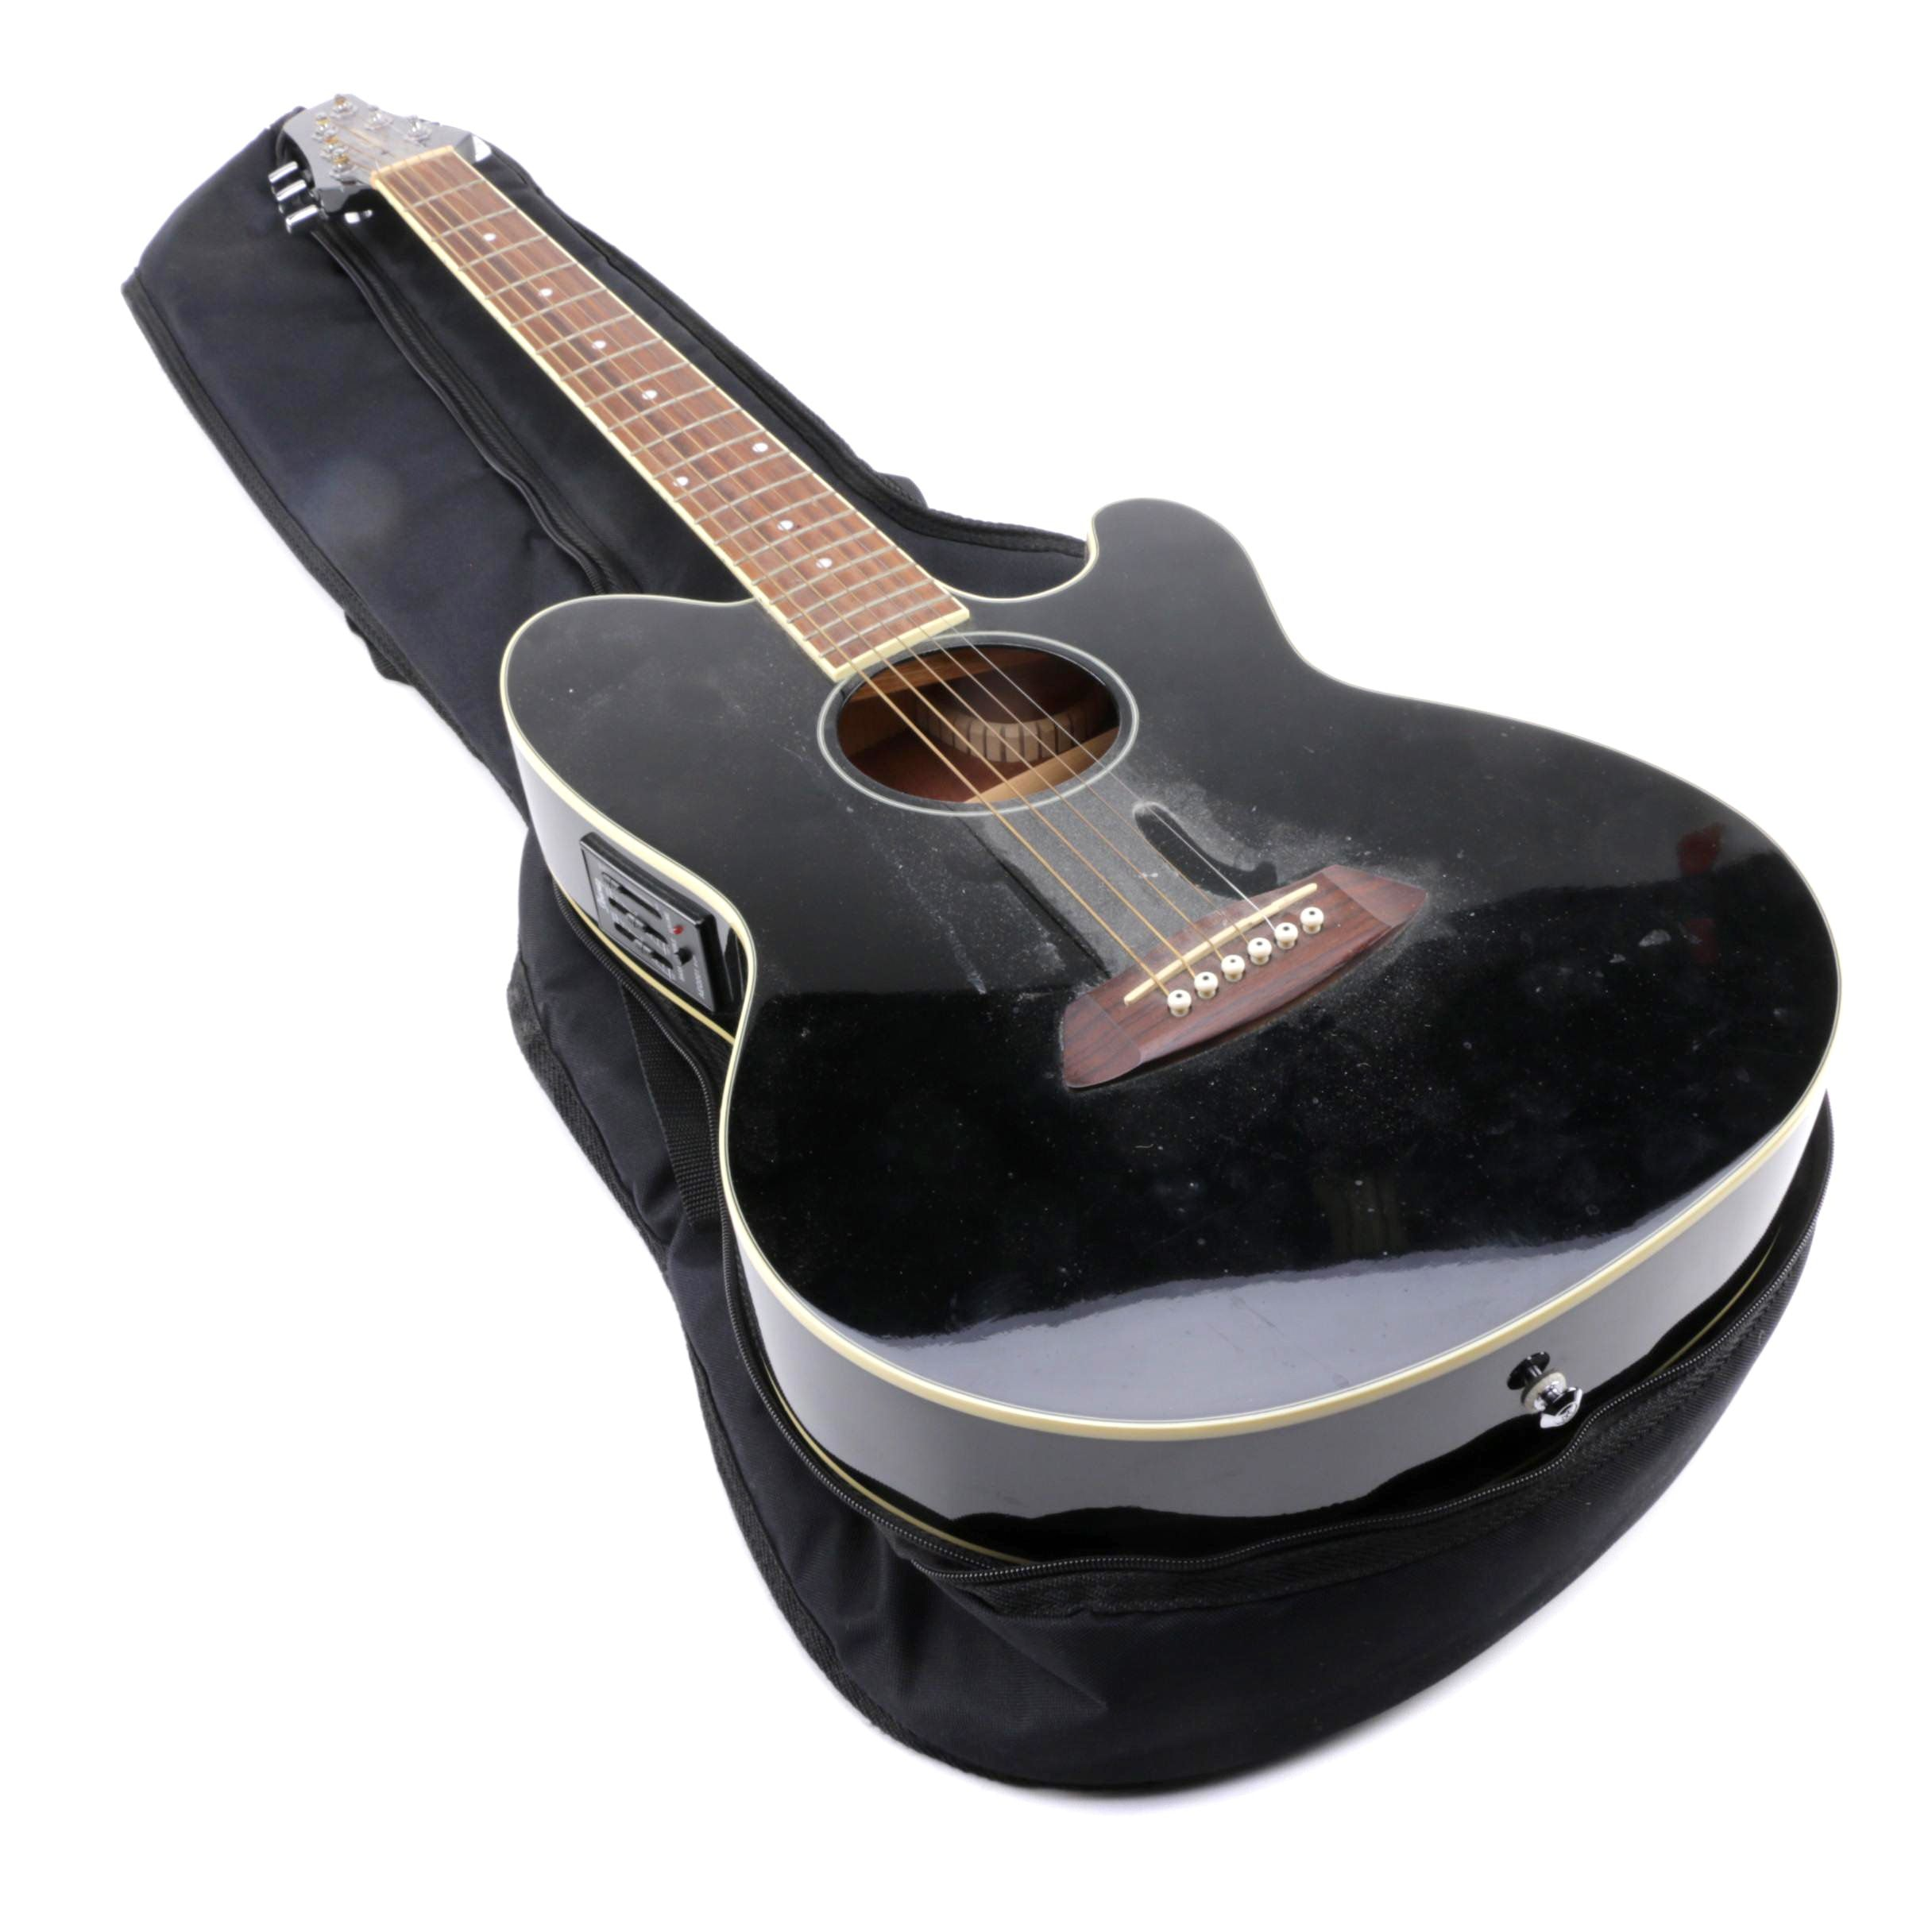 Priority Ibanez Talman Acoustic Electric Guitar And Case Ebth